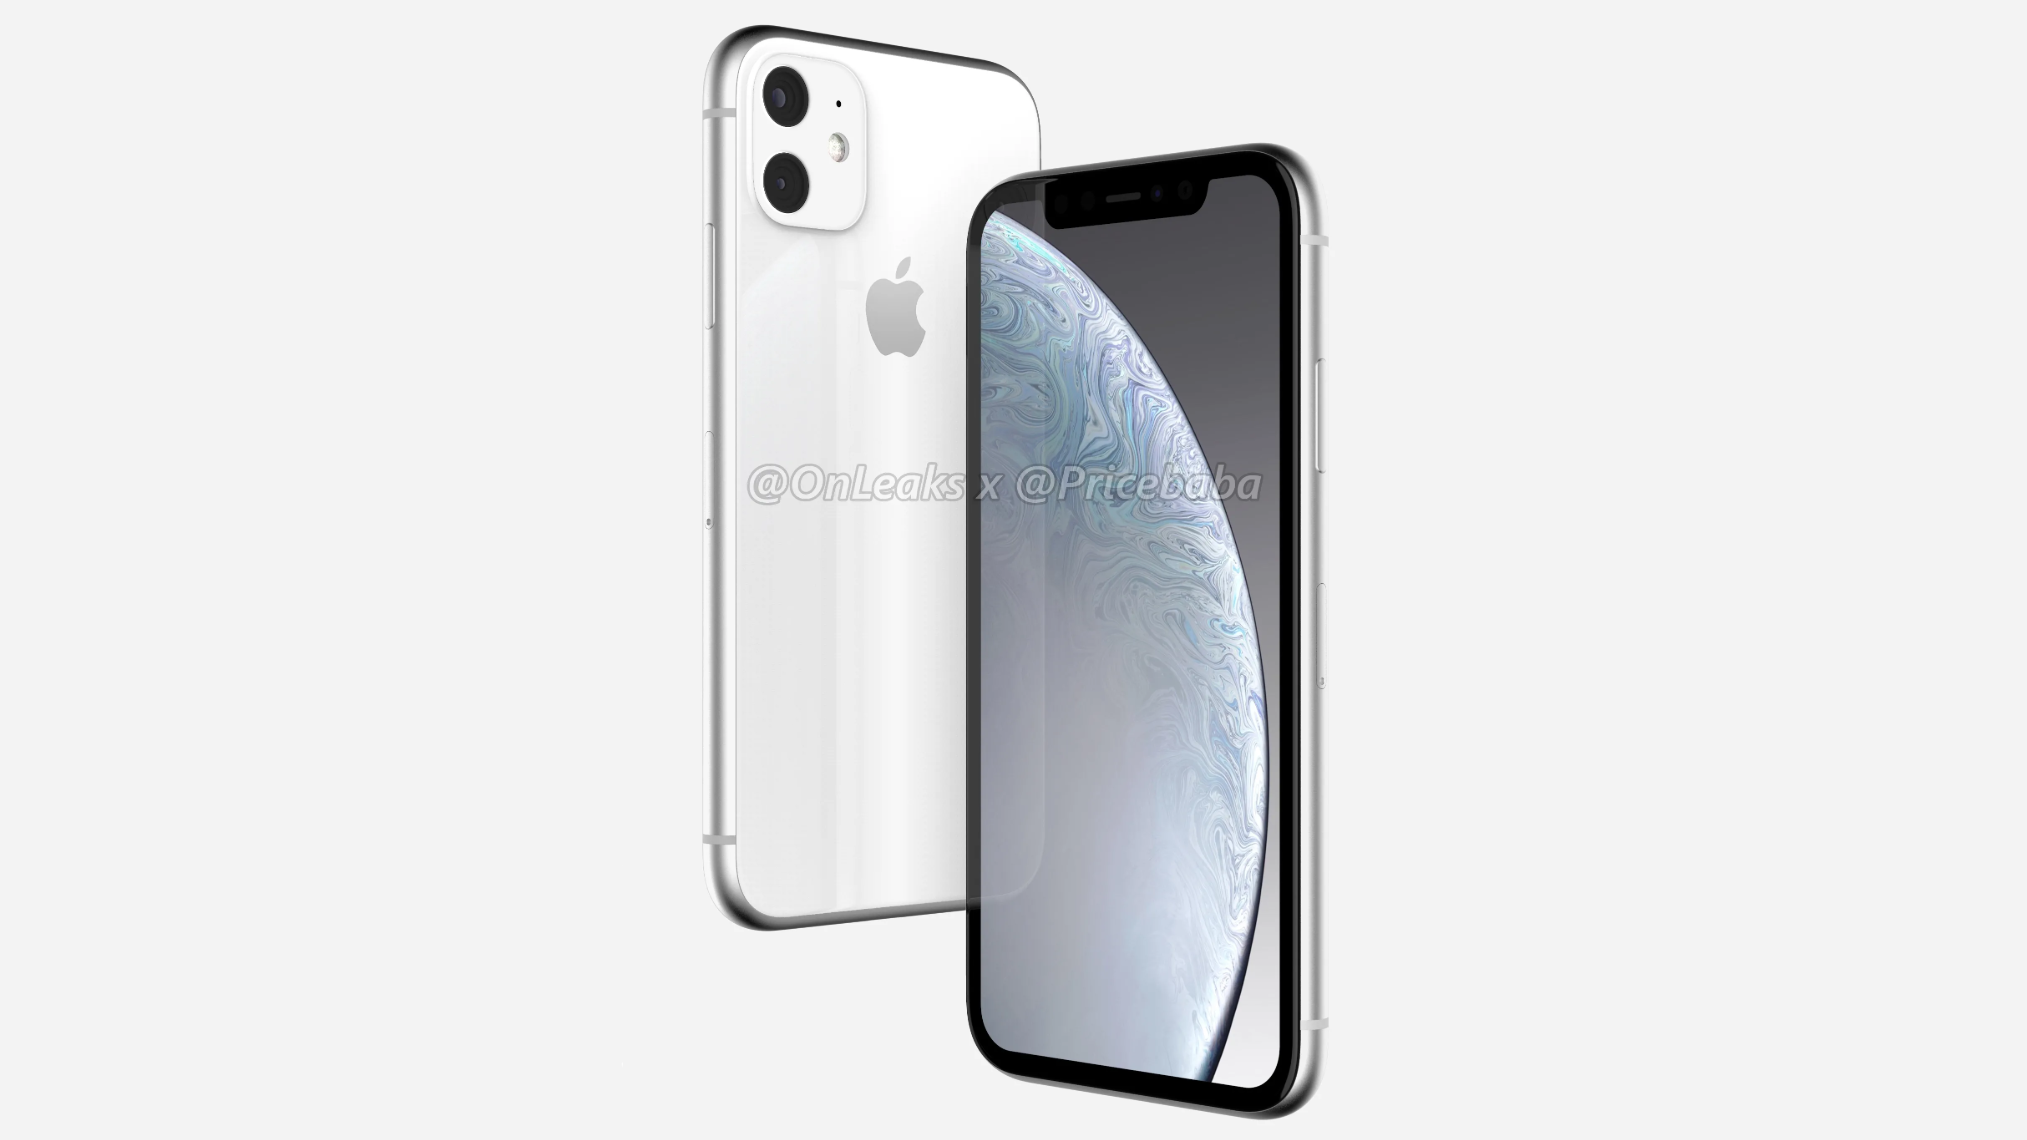 iPhone 11 release date: Apple to launch new iPhones in